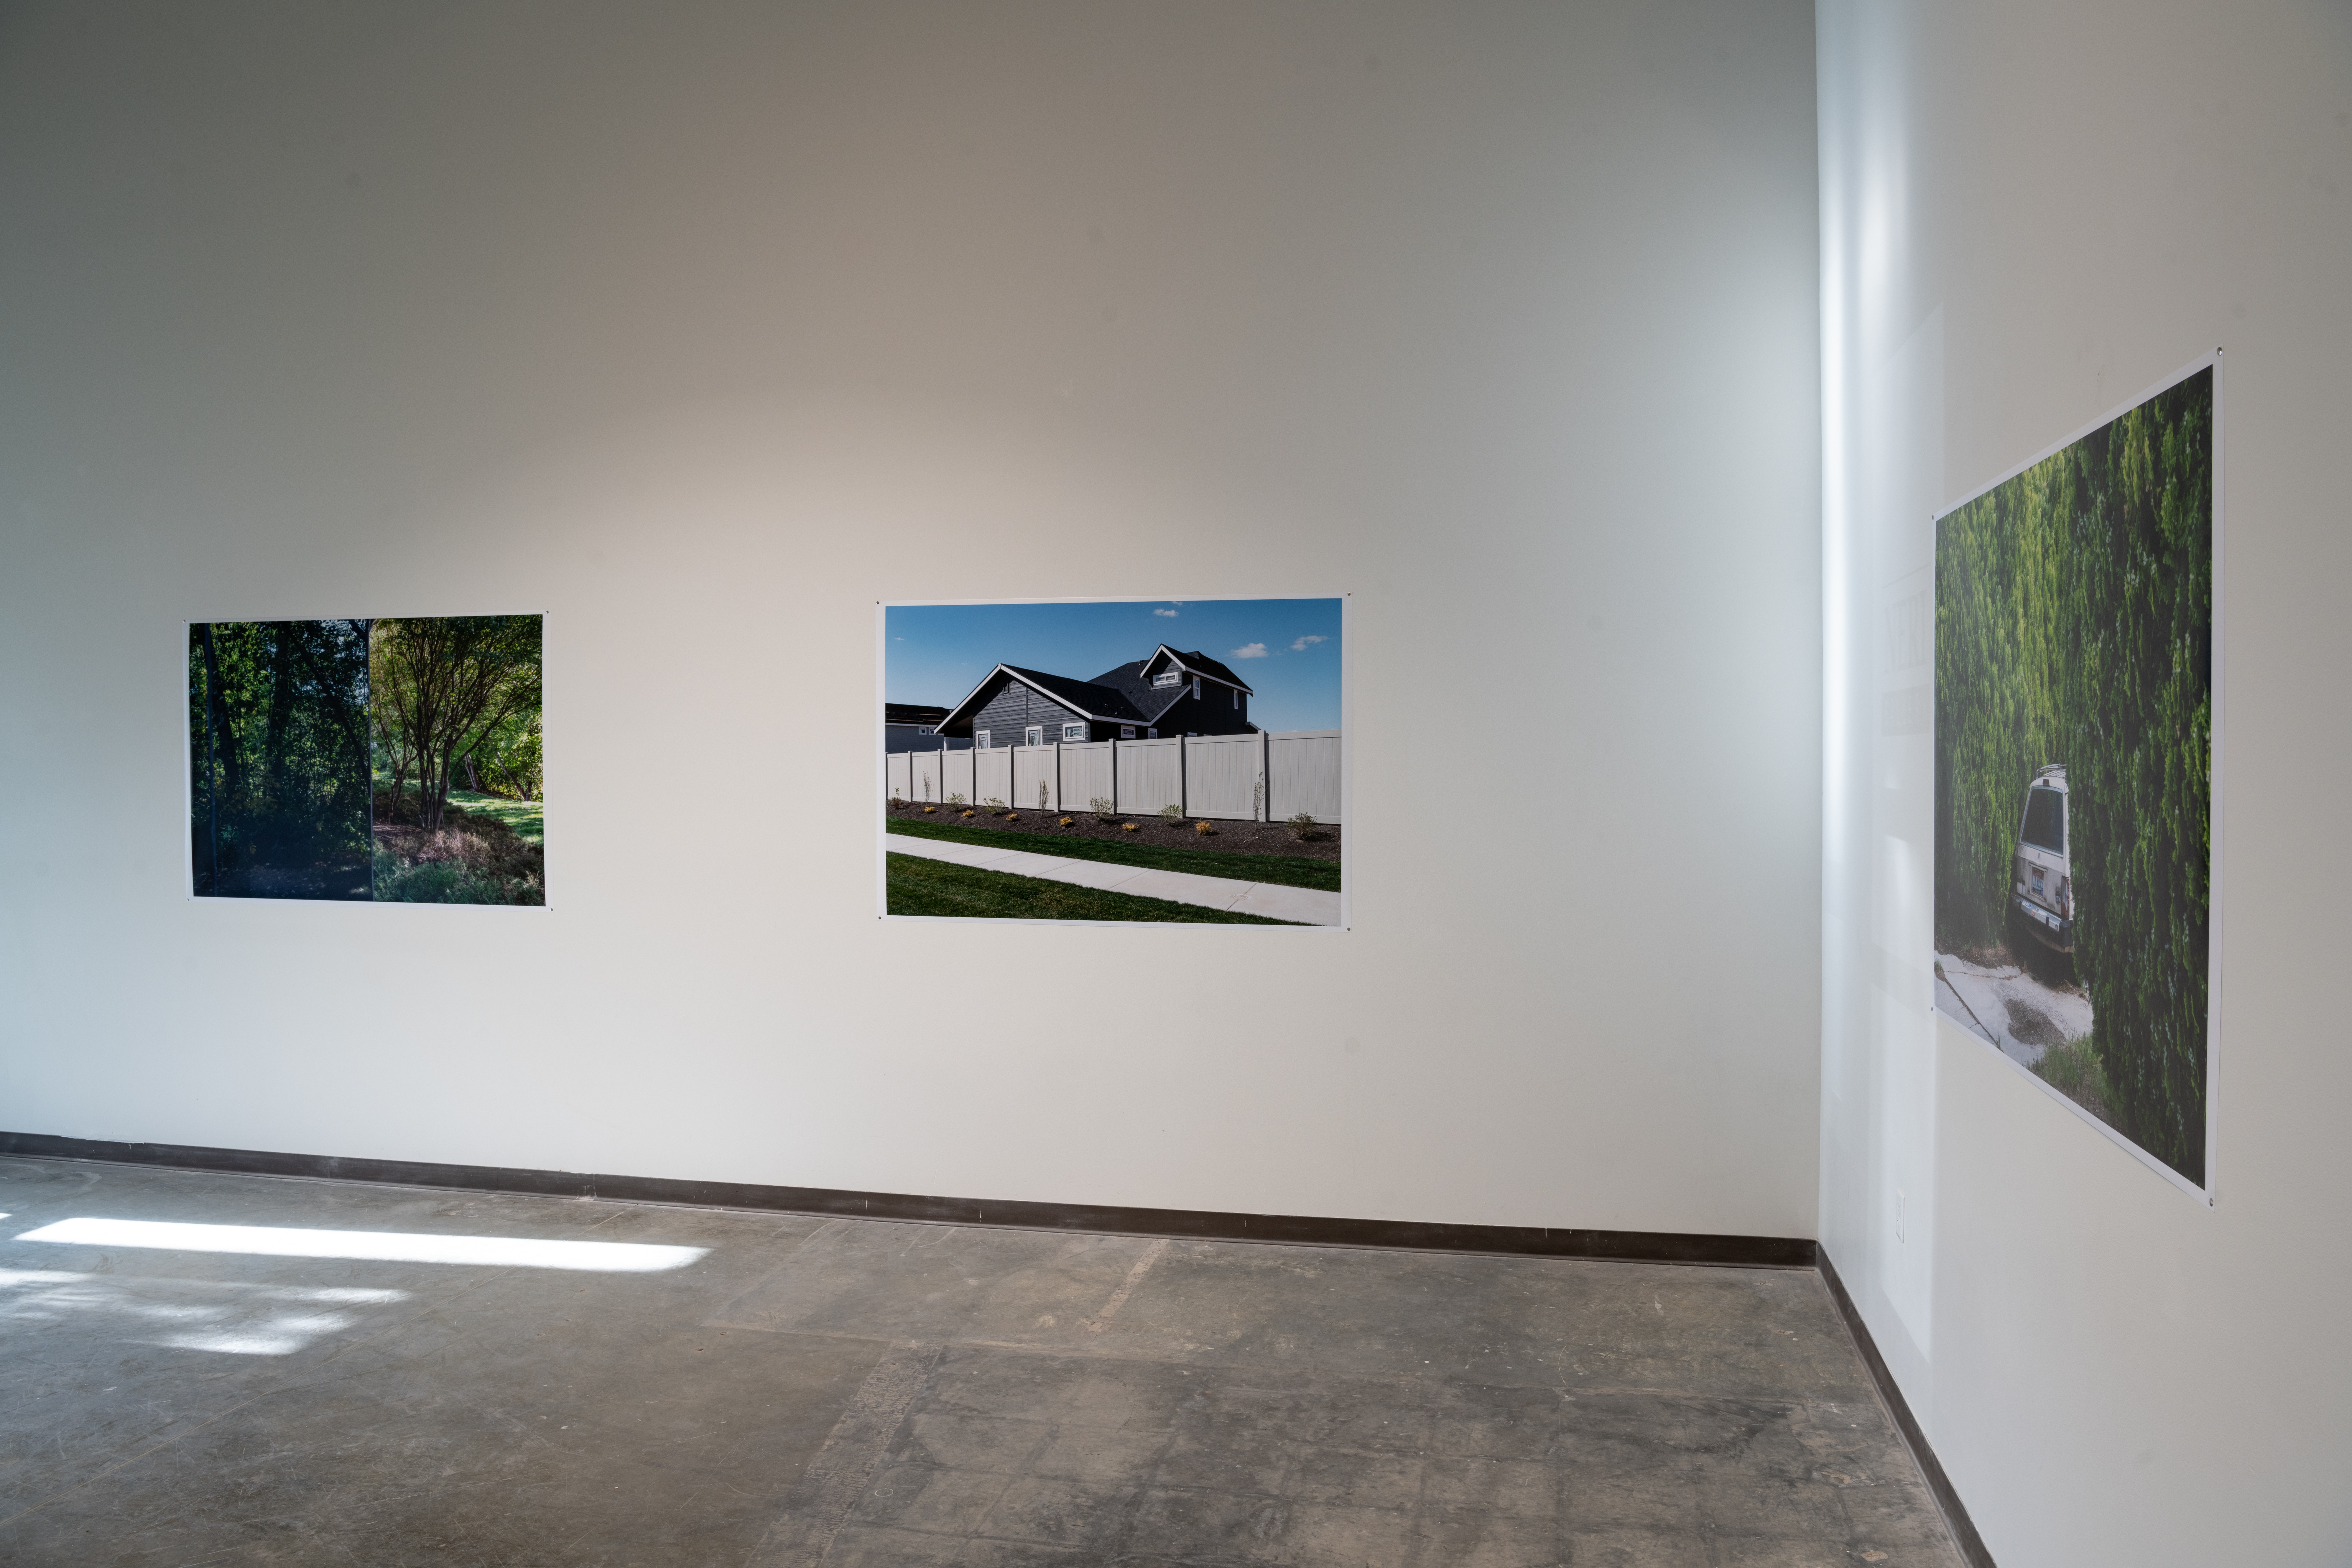 View of first 3 Zhang photos: left - diptych of trees, middle photo - blue sky over gray house behind a white fence, left - angled view of shrubs surrounding a the backyard of a car in a driveway.